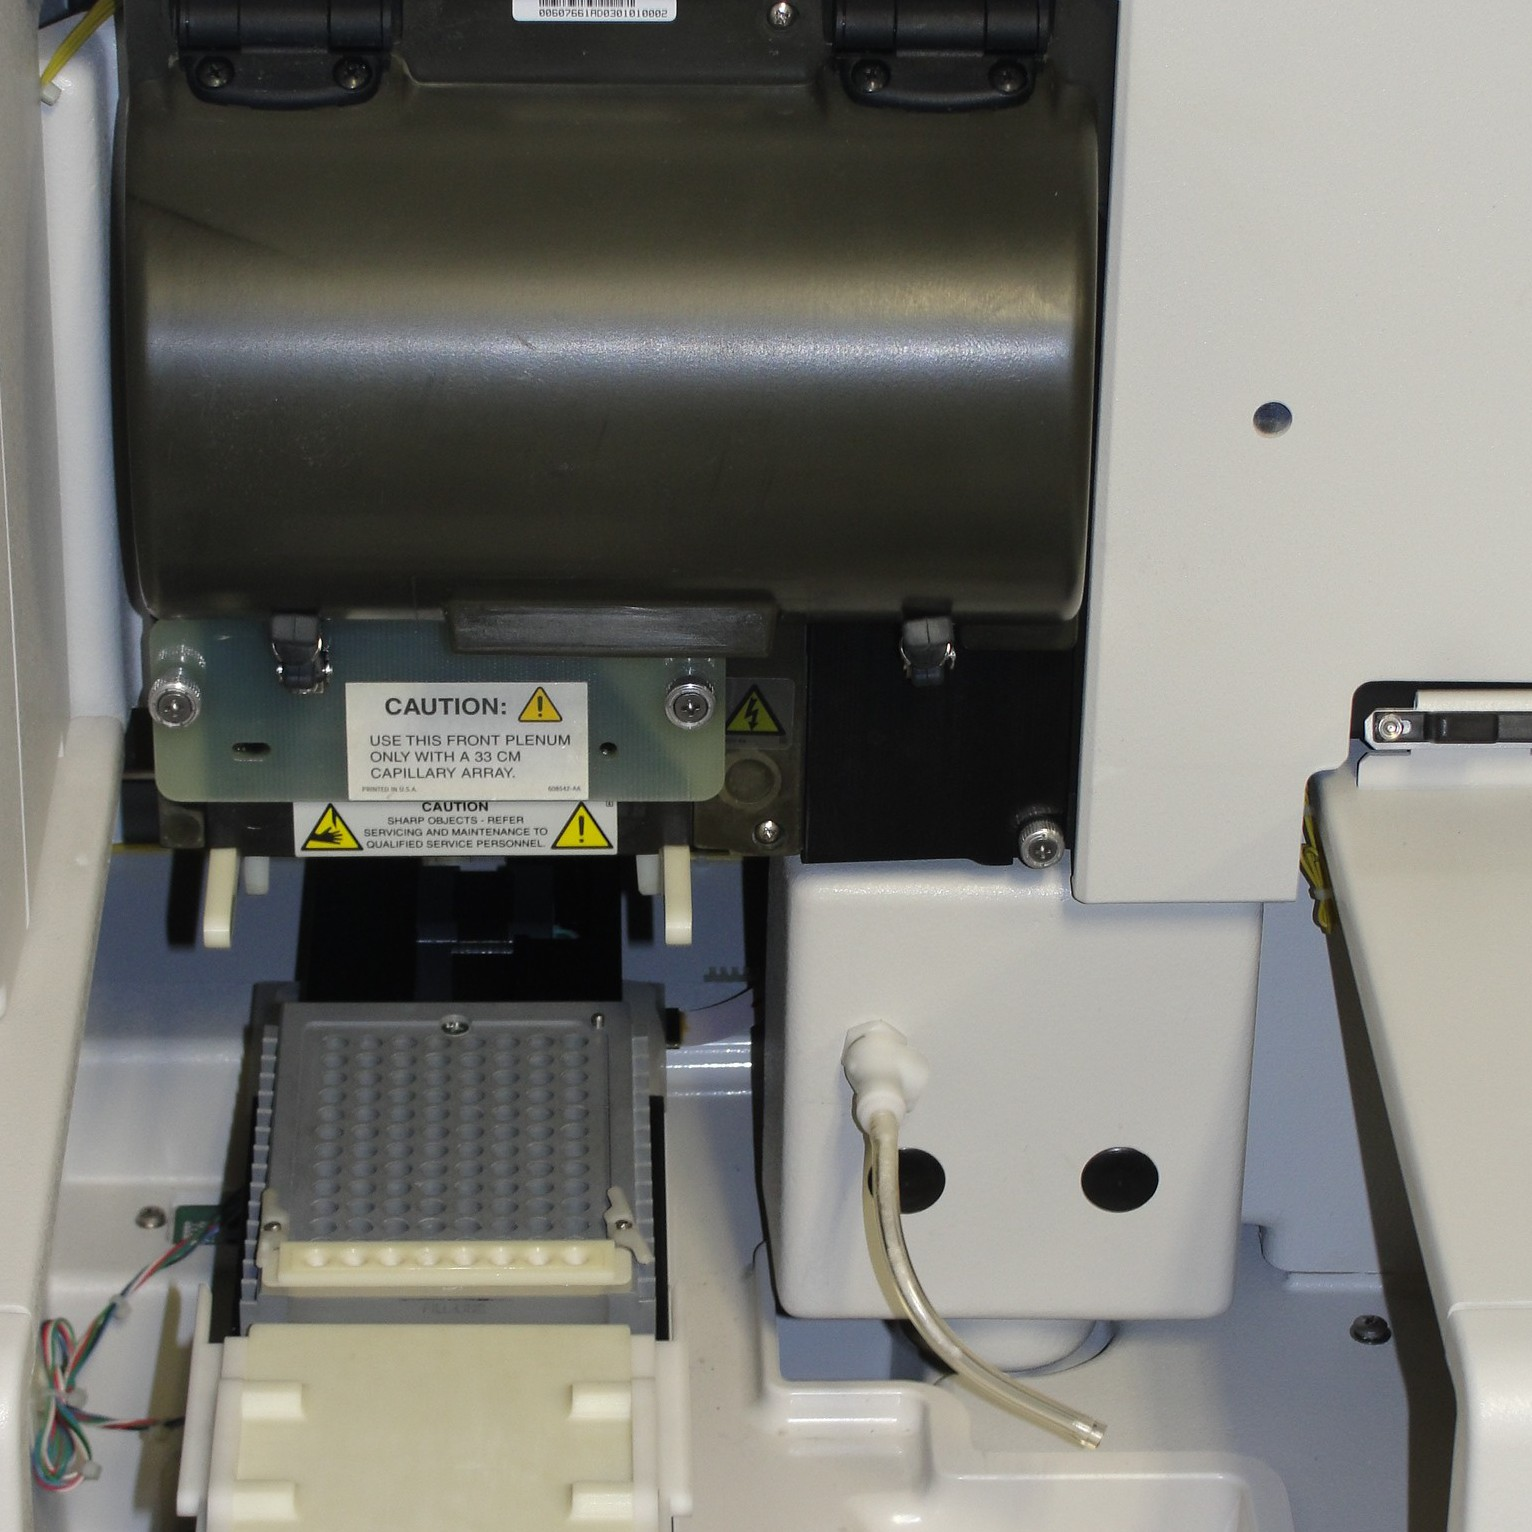 Beckman Coulter CEQ 8000 Genetic Analysis System Image